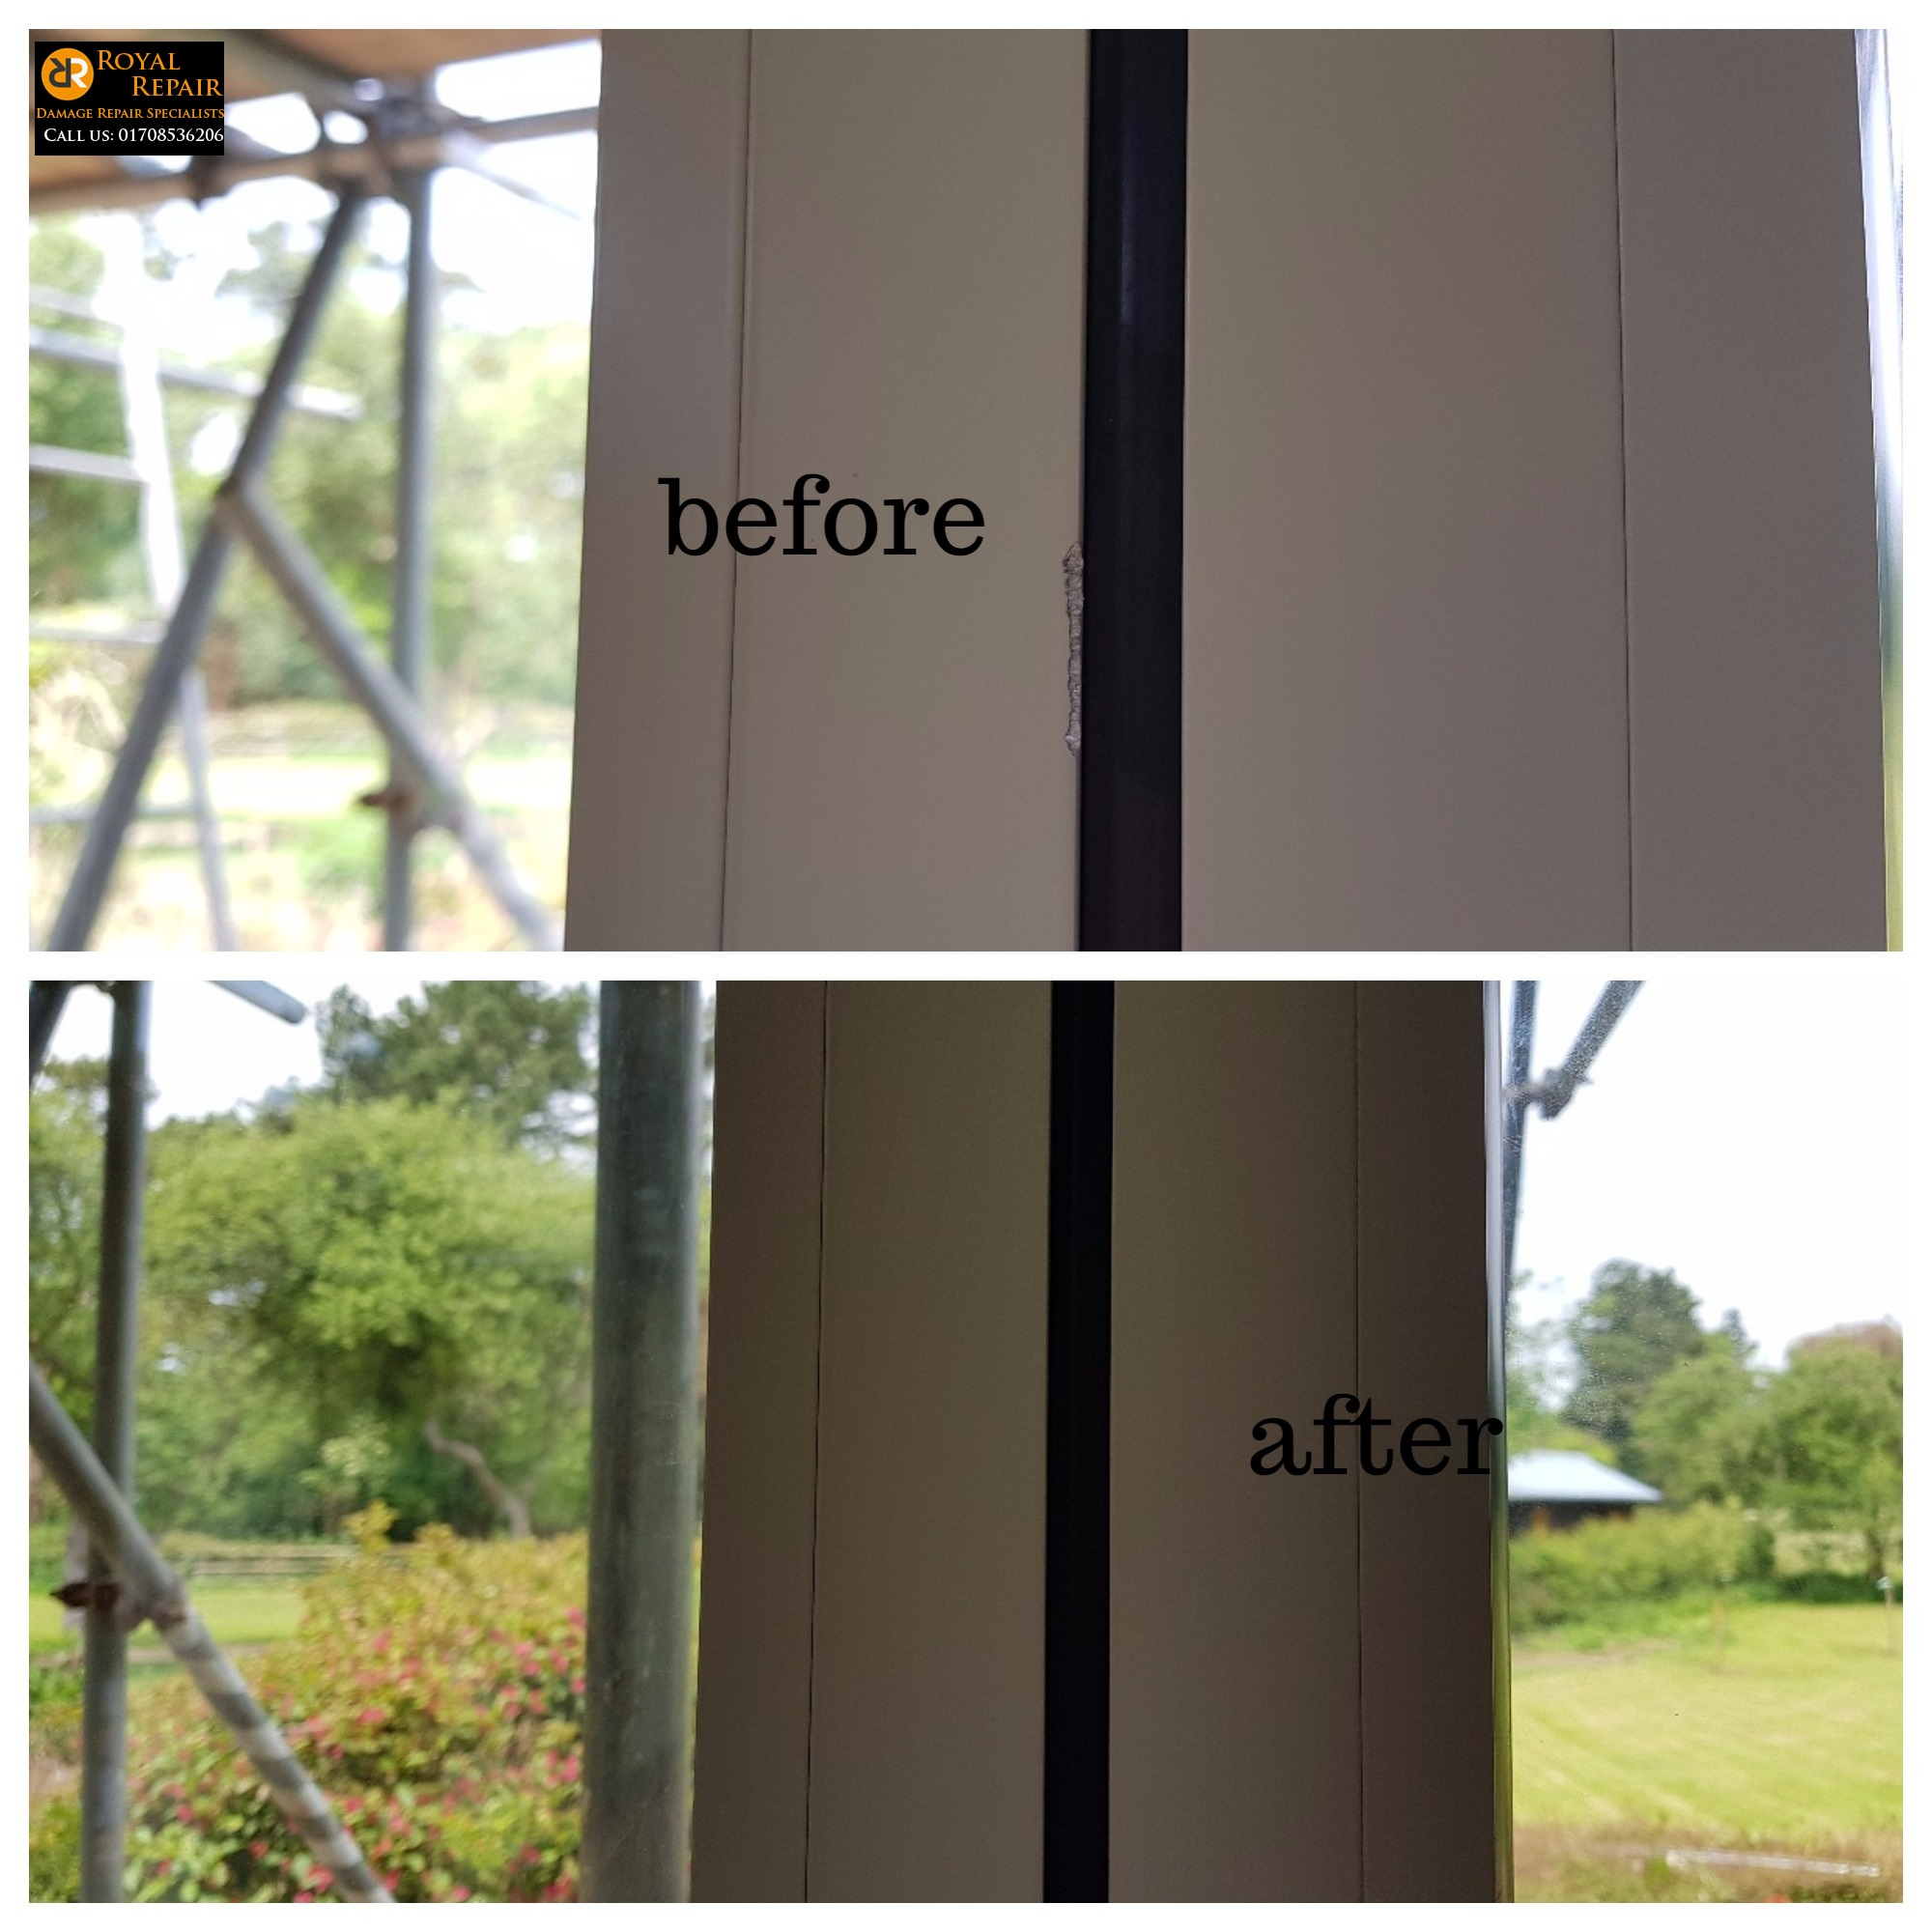 Window frame chip repair in Barnet, London - Royal Repair